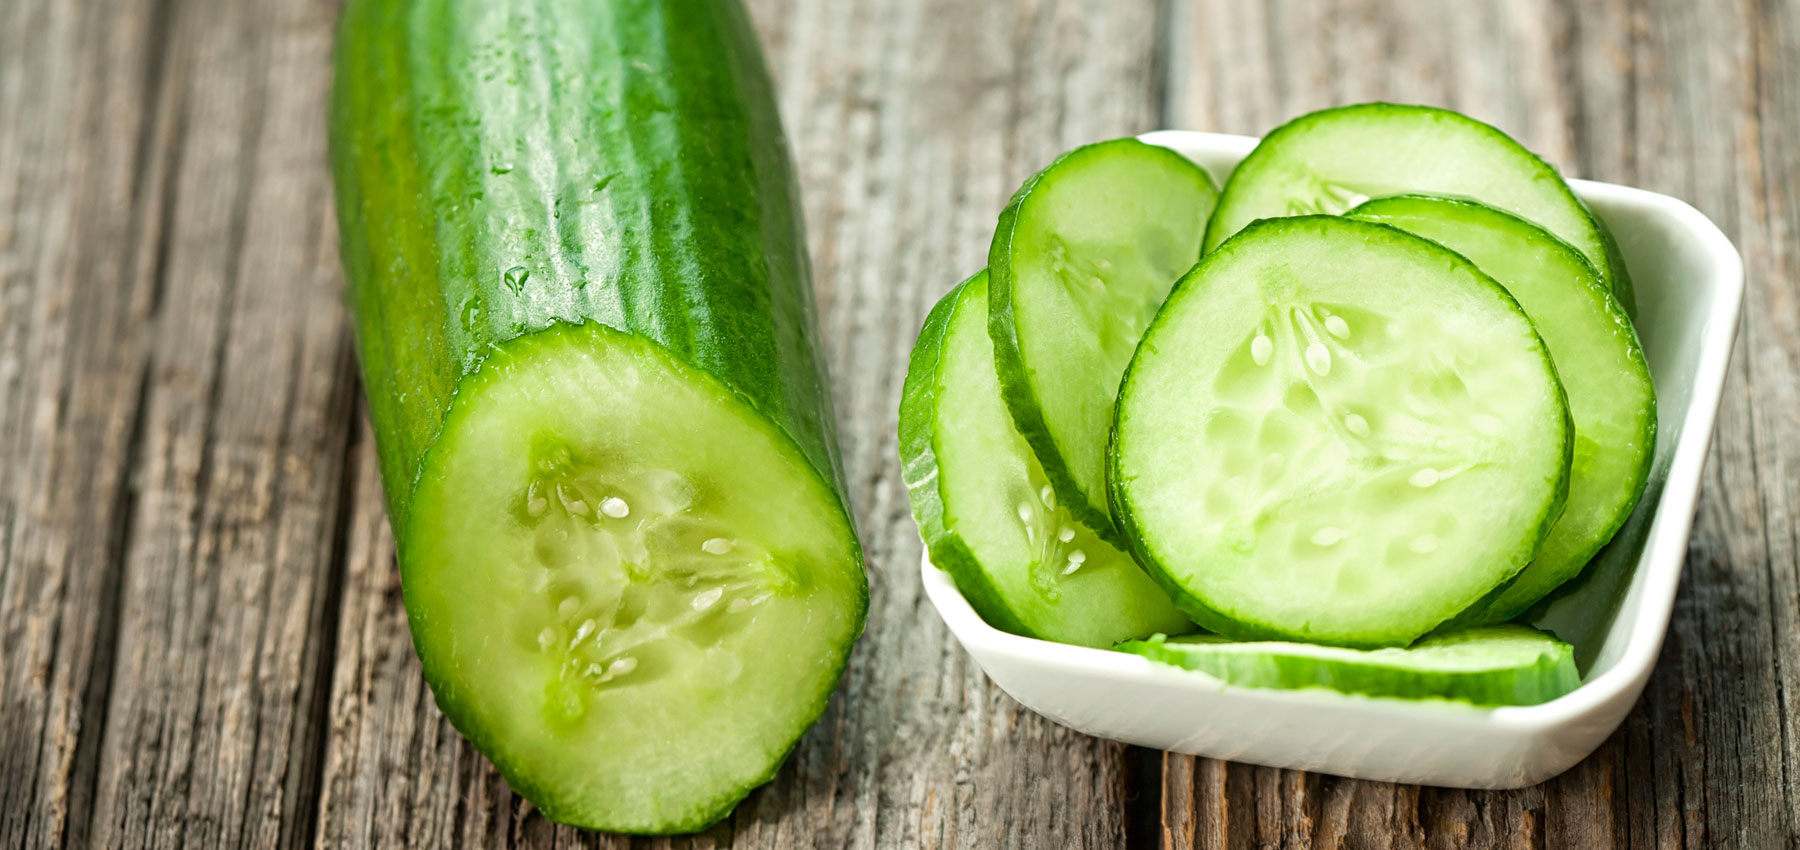 Is Cucumber a Fruit or a Vegetable?